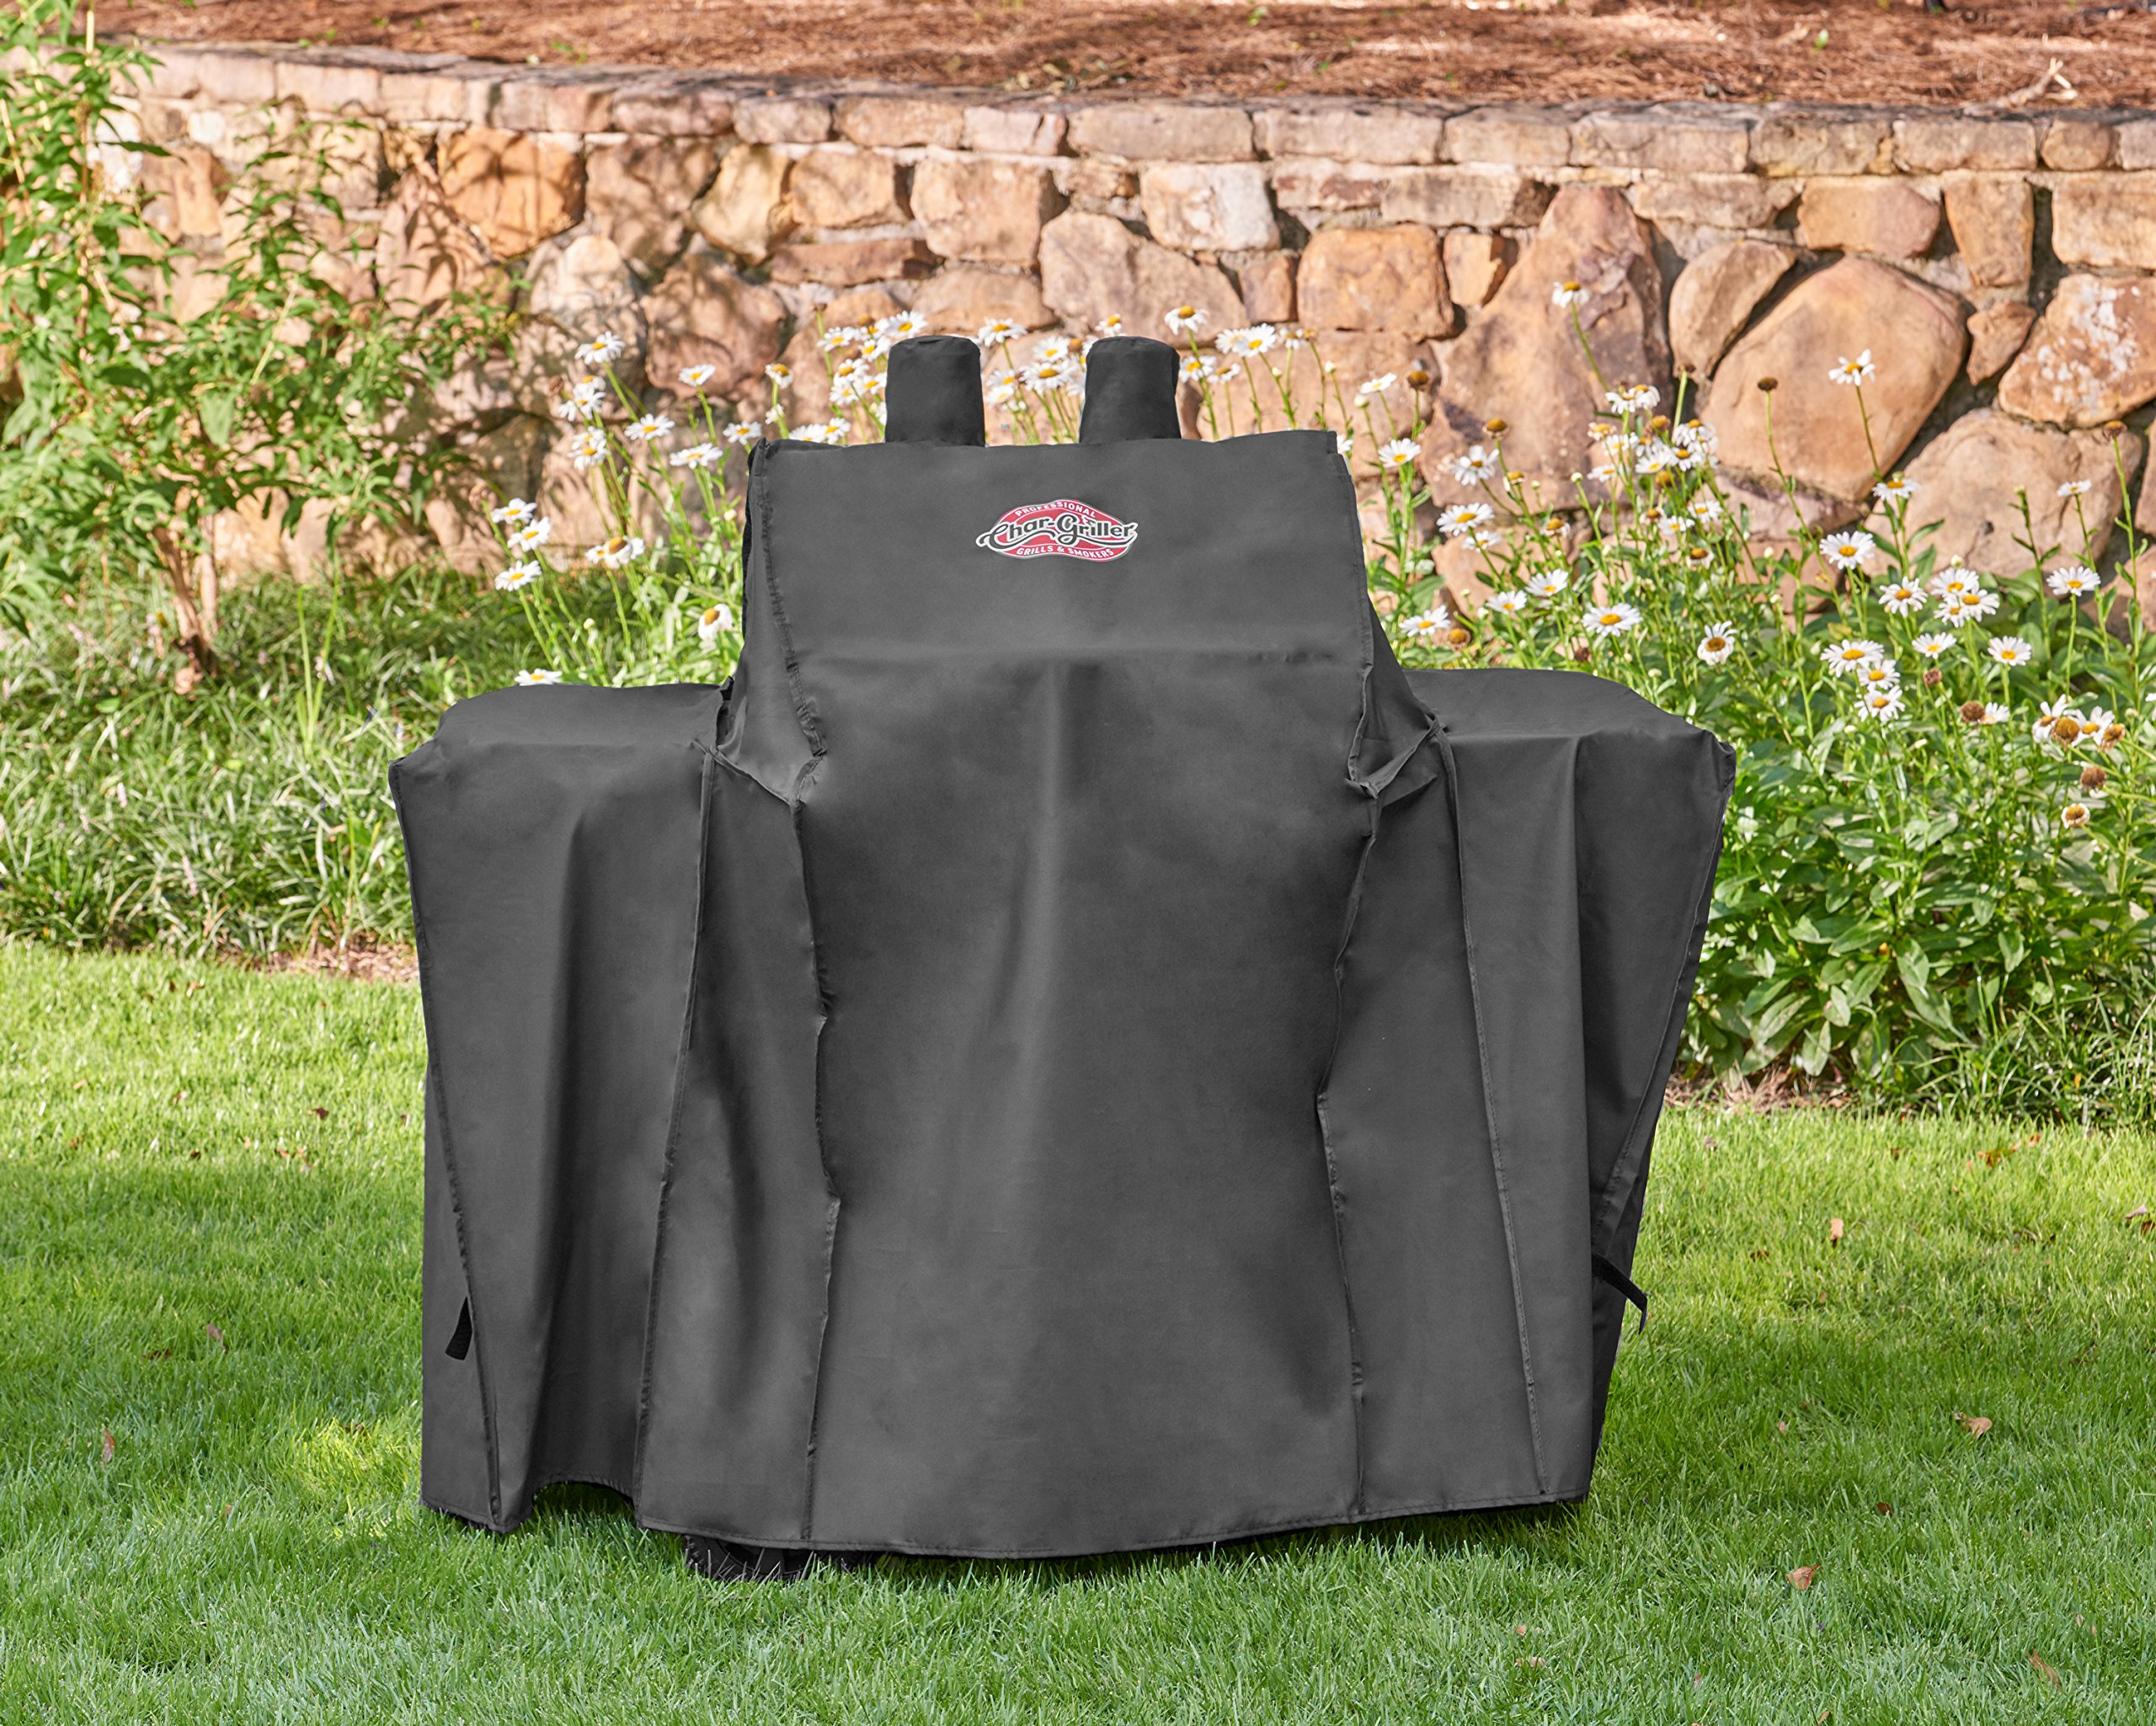 Char-Griller 3055 Grill Cover, Fits the Grillin' Pro 3001 and 3000